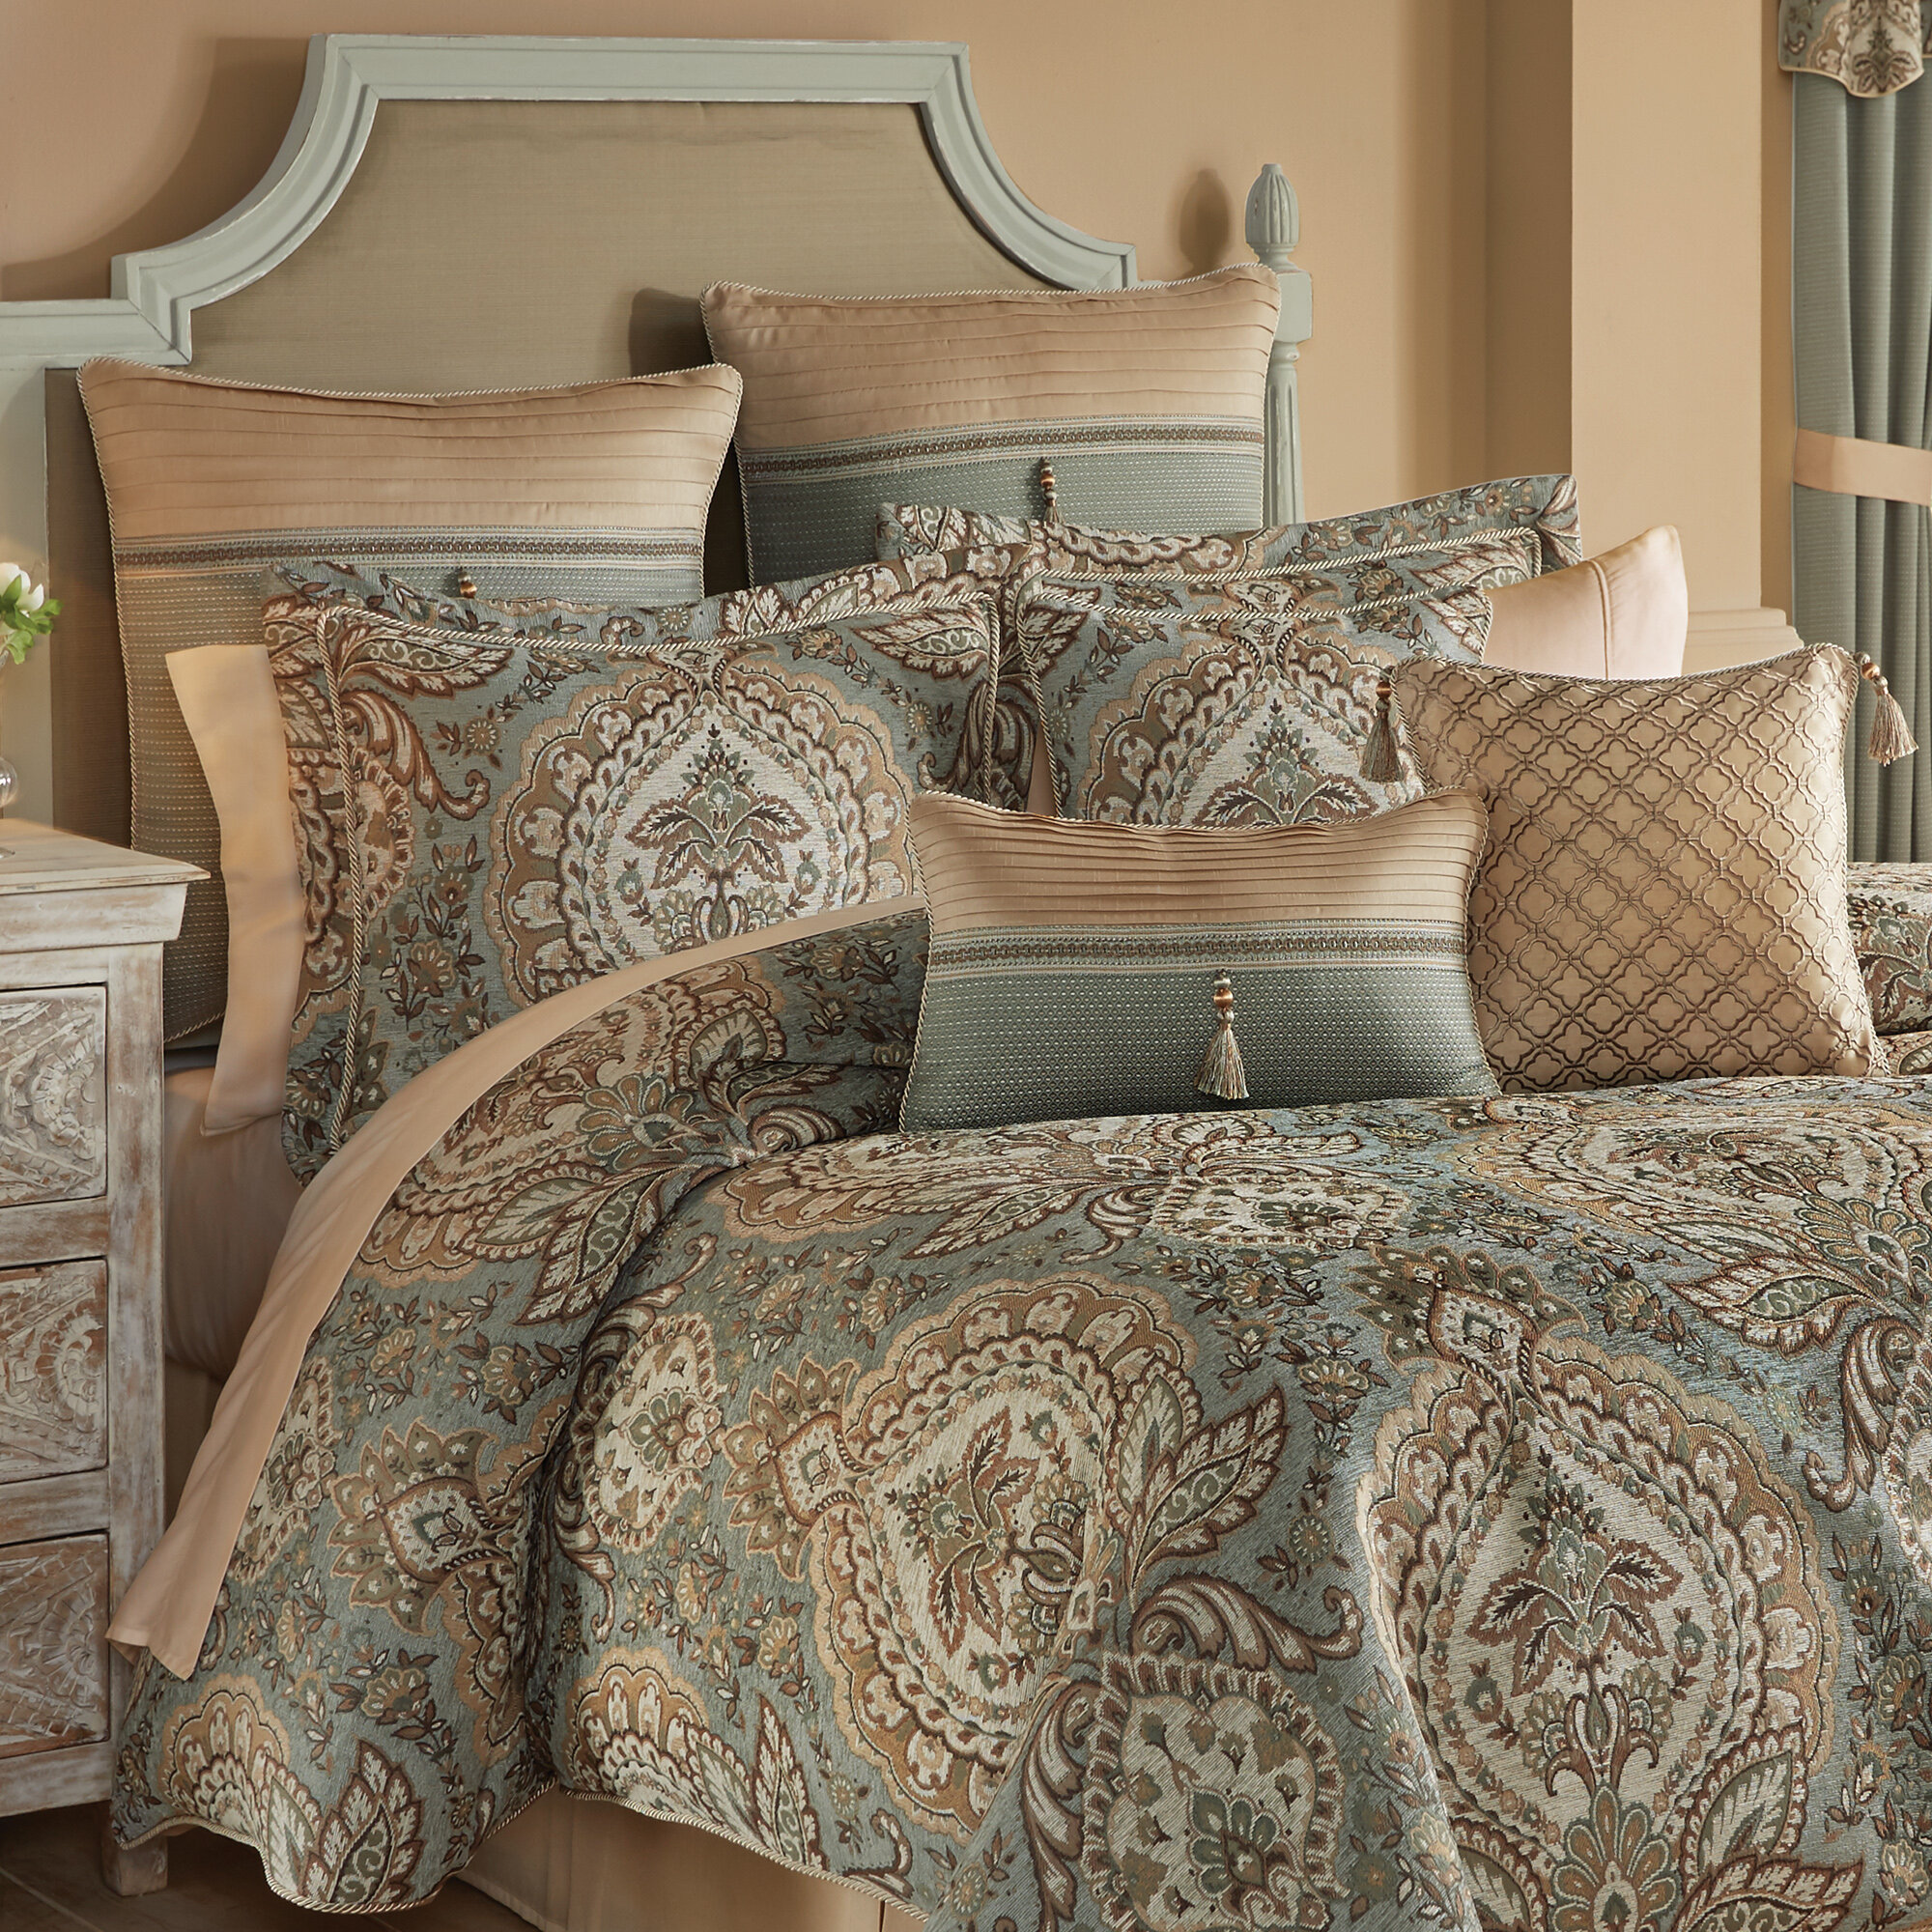 on colors collections and york you new stuff designs home pretty fun check set comforter will hotel bedding various bedrooms bath love pin